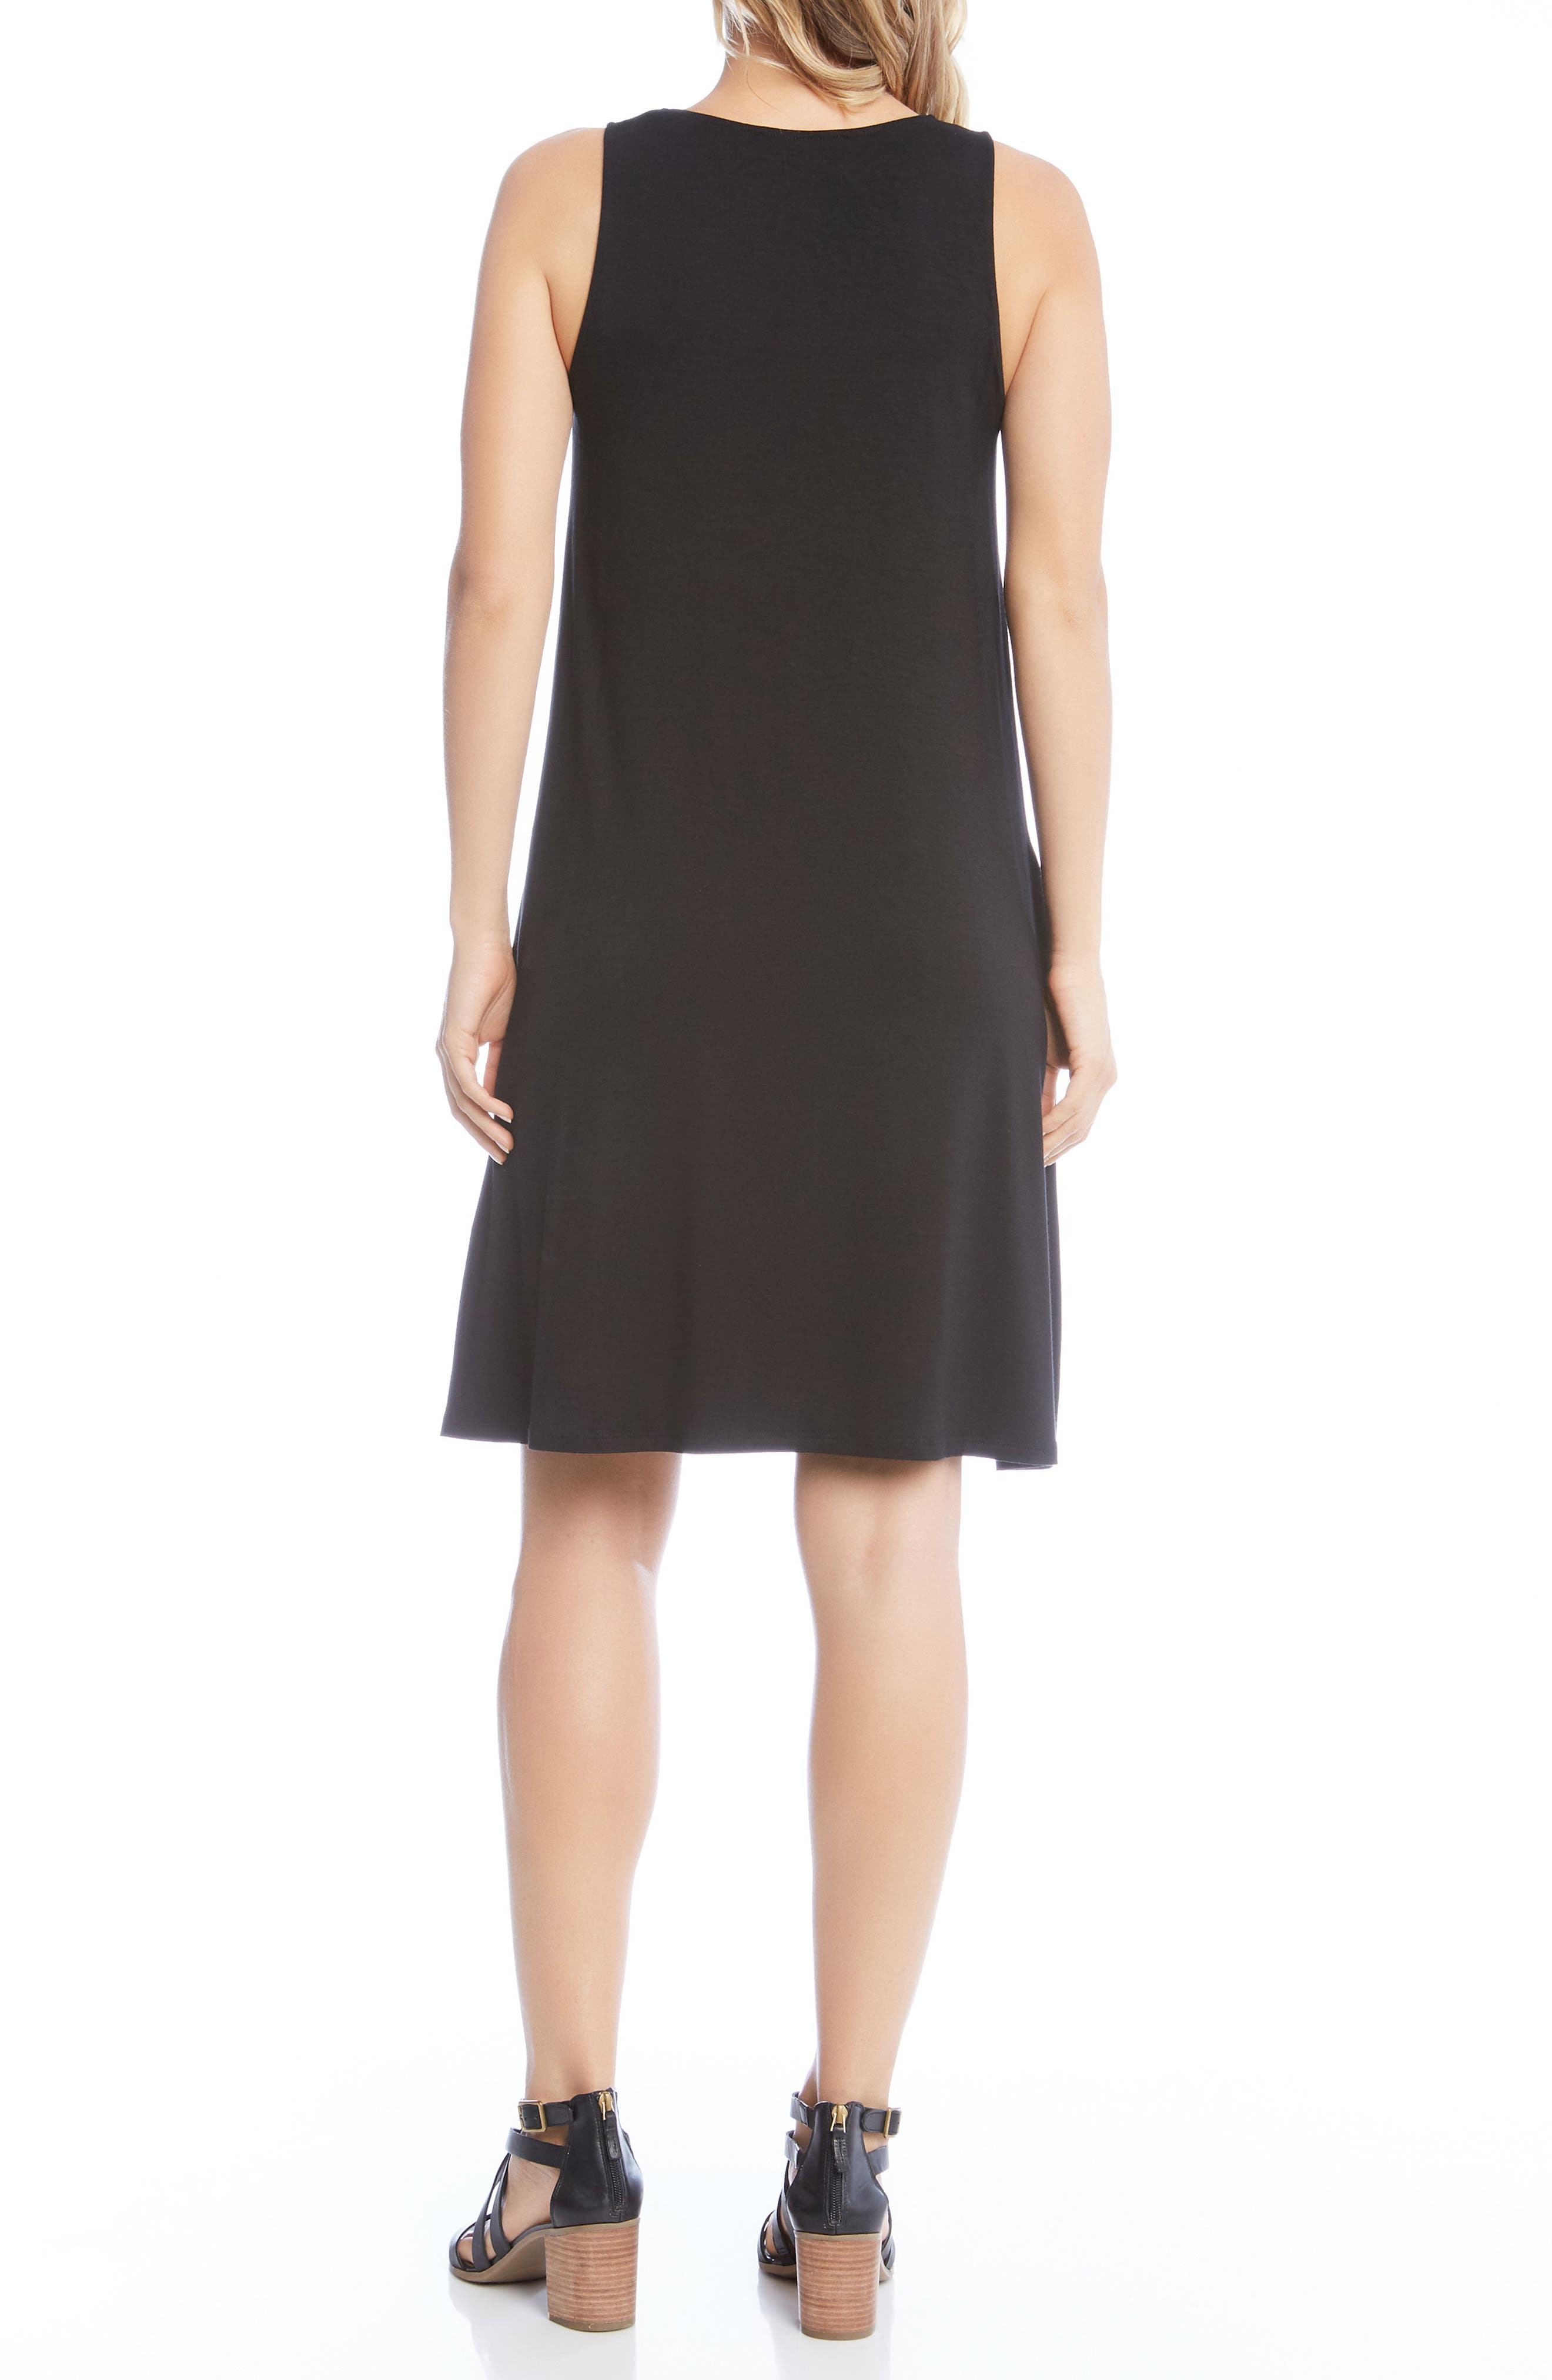 Chloe Swing Jersey Dress,                             Alternate thumbnail 2, color,                             Black